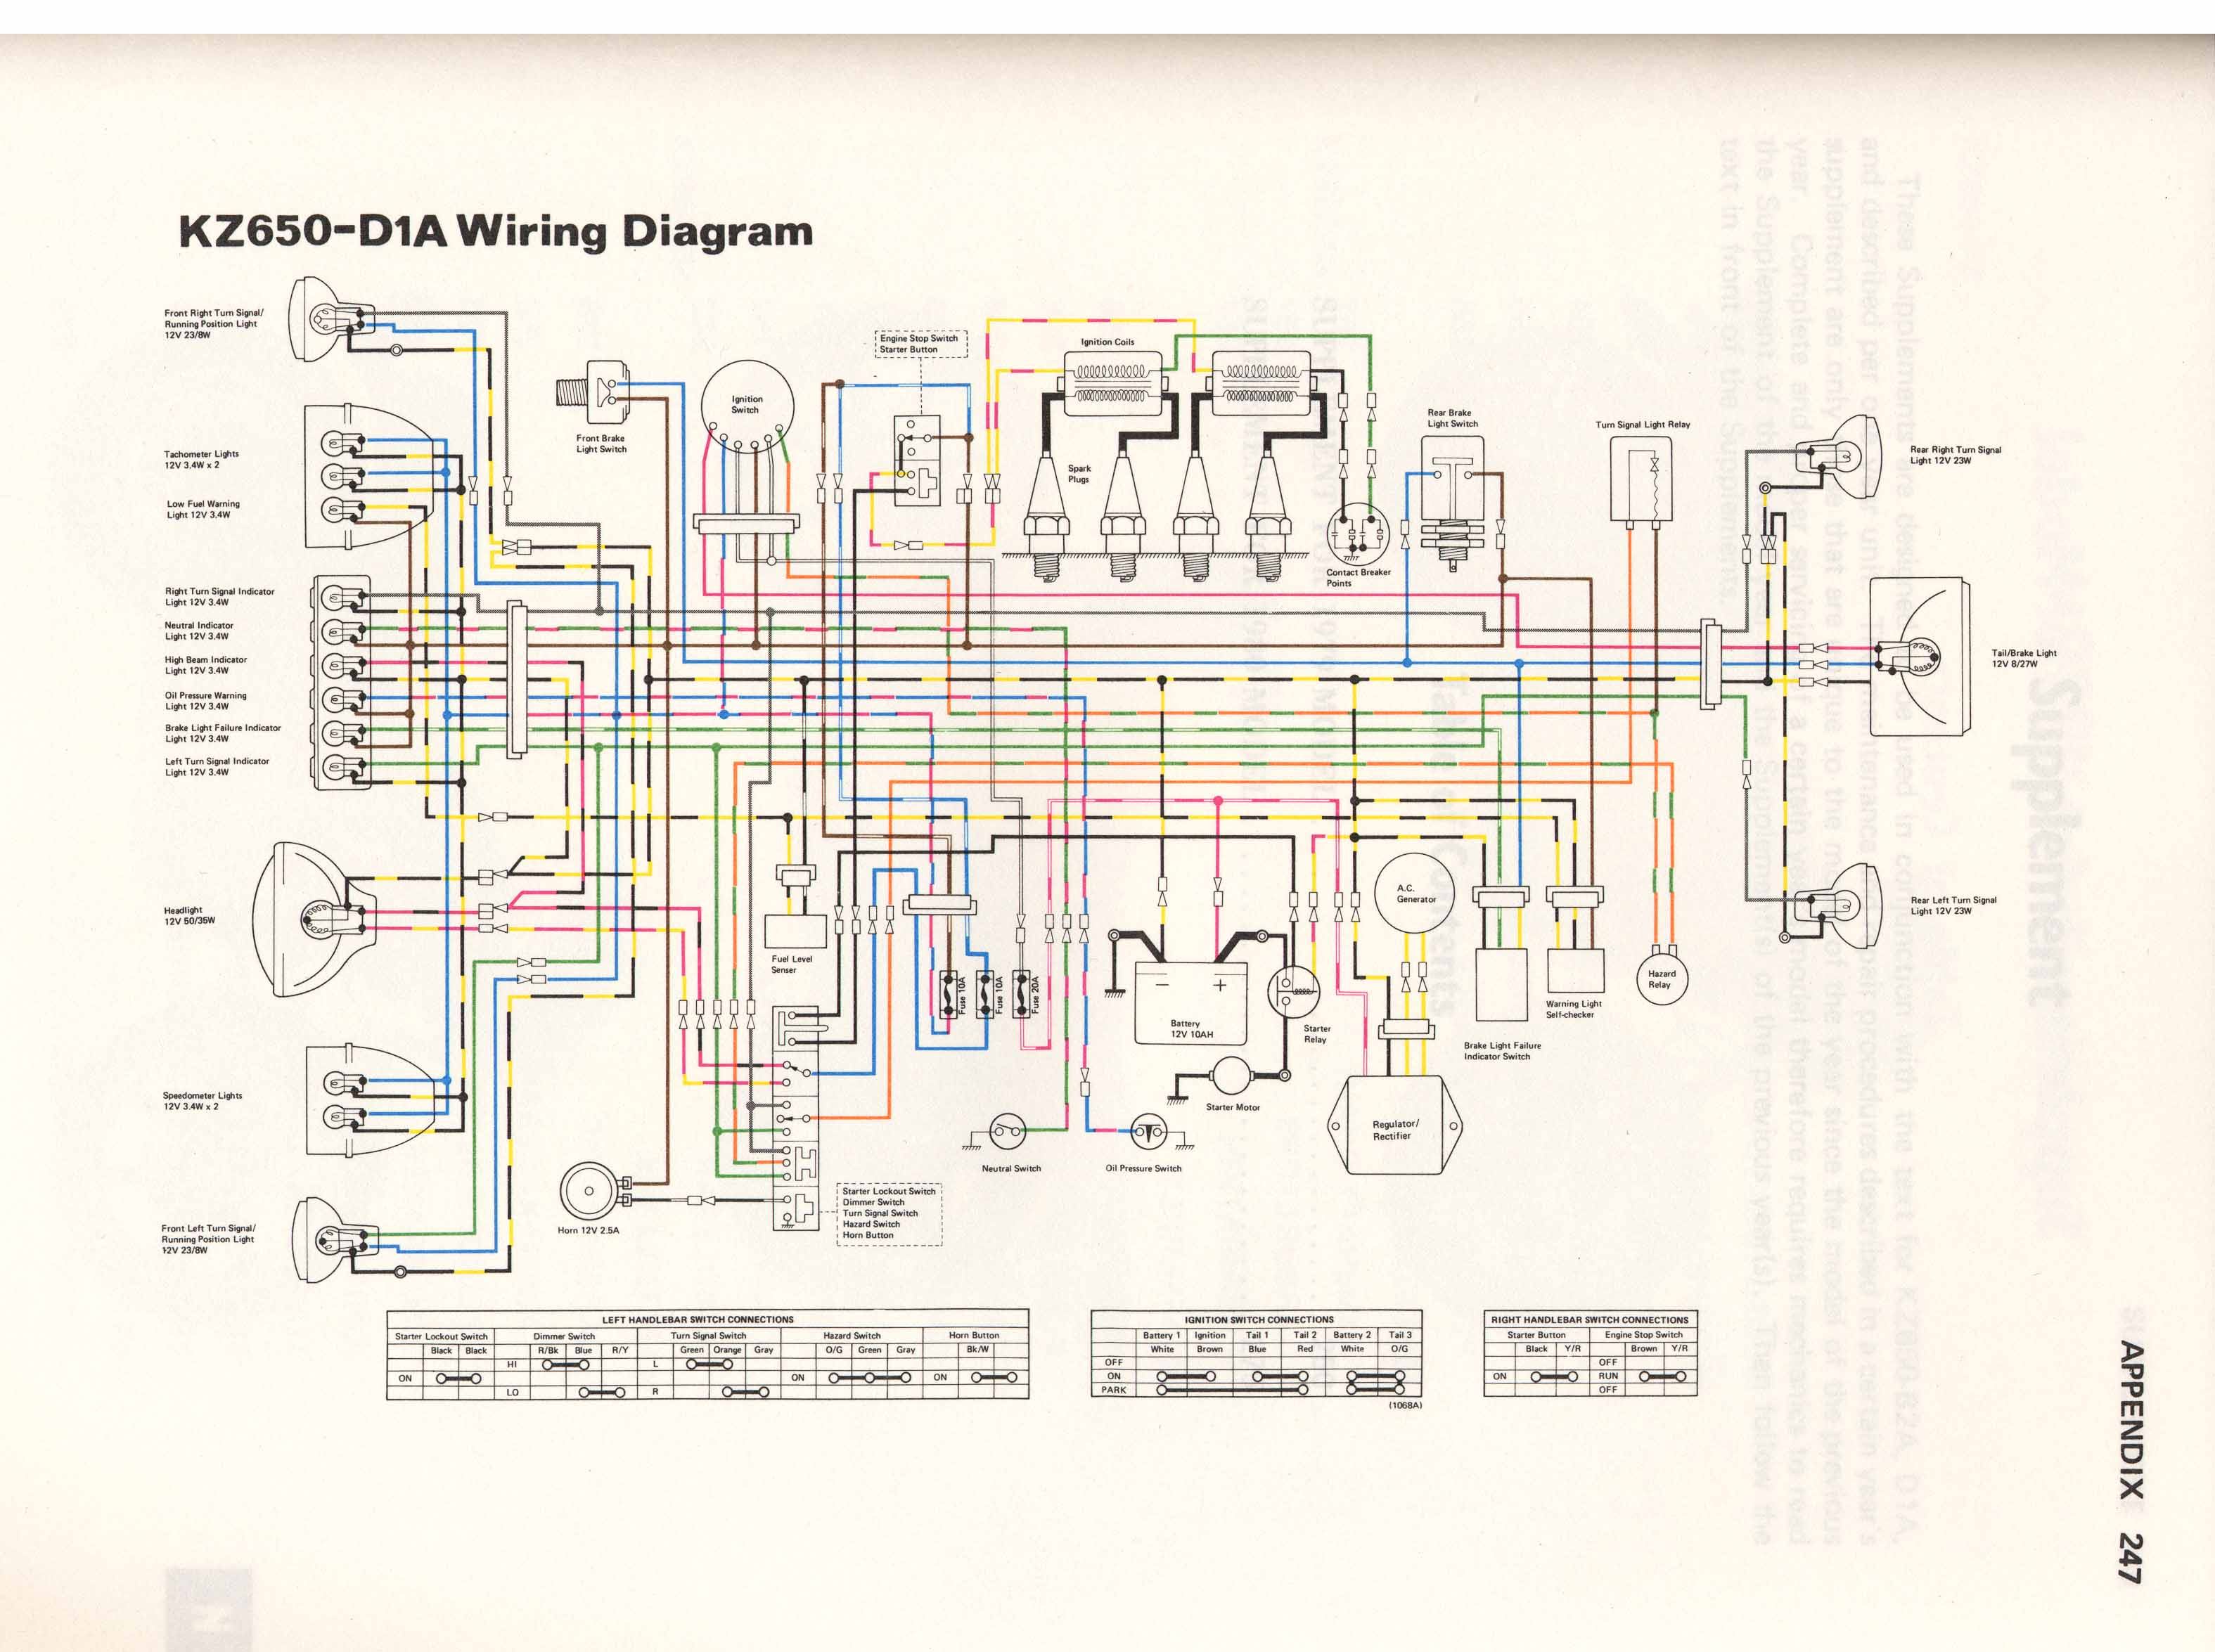 80 kz650 wiring diagram kz650.info - wiring diagrams kz650 wiring diagram